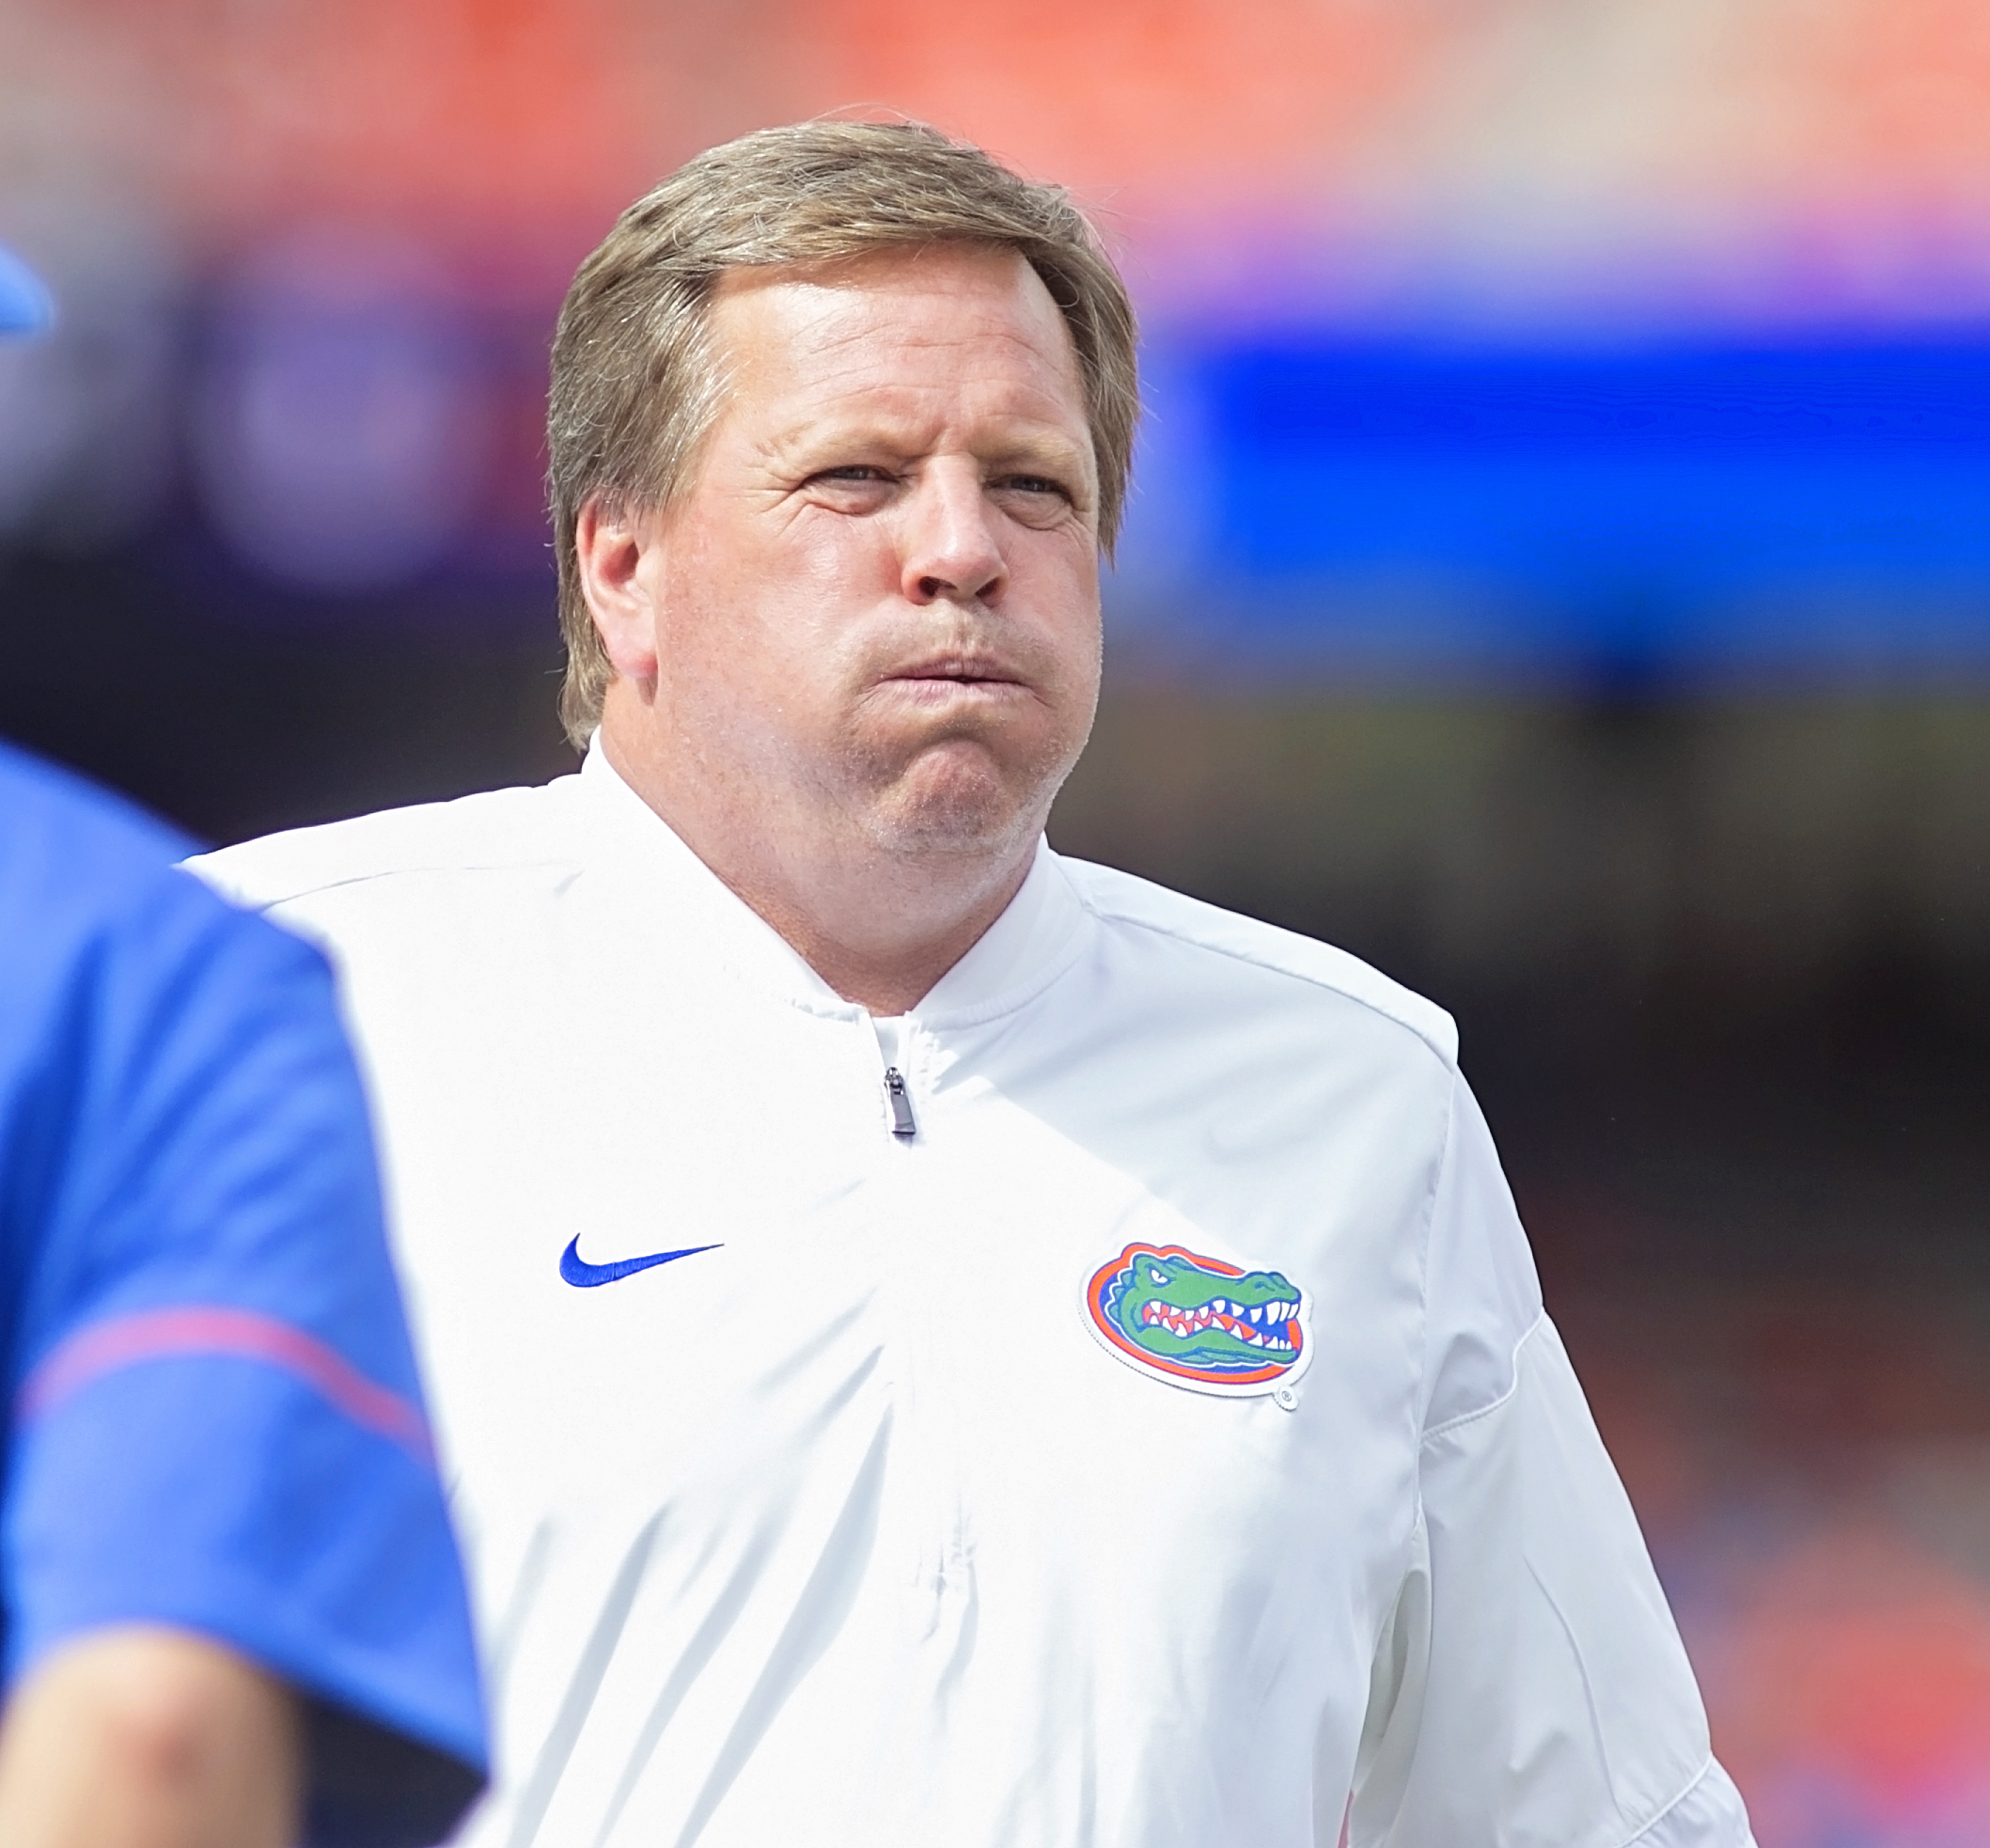 McElwain frUstrated after a narrow defeat./CARMEN MANDATO